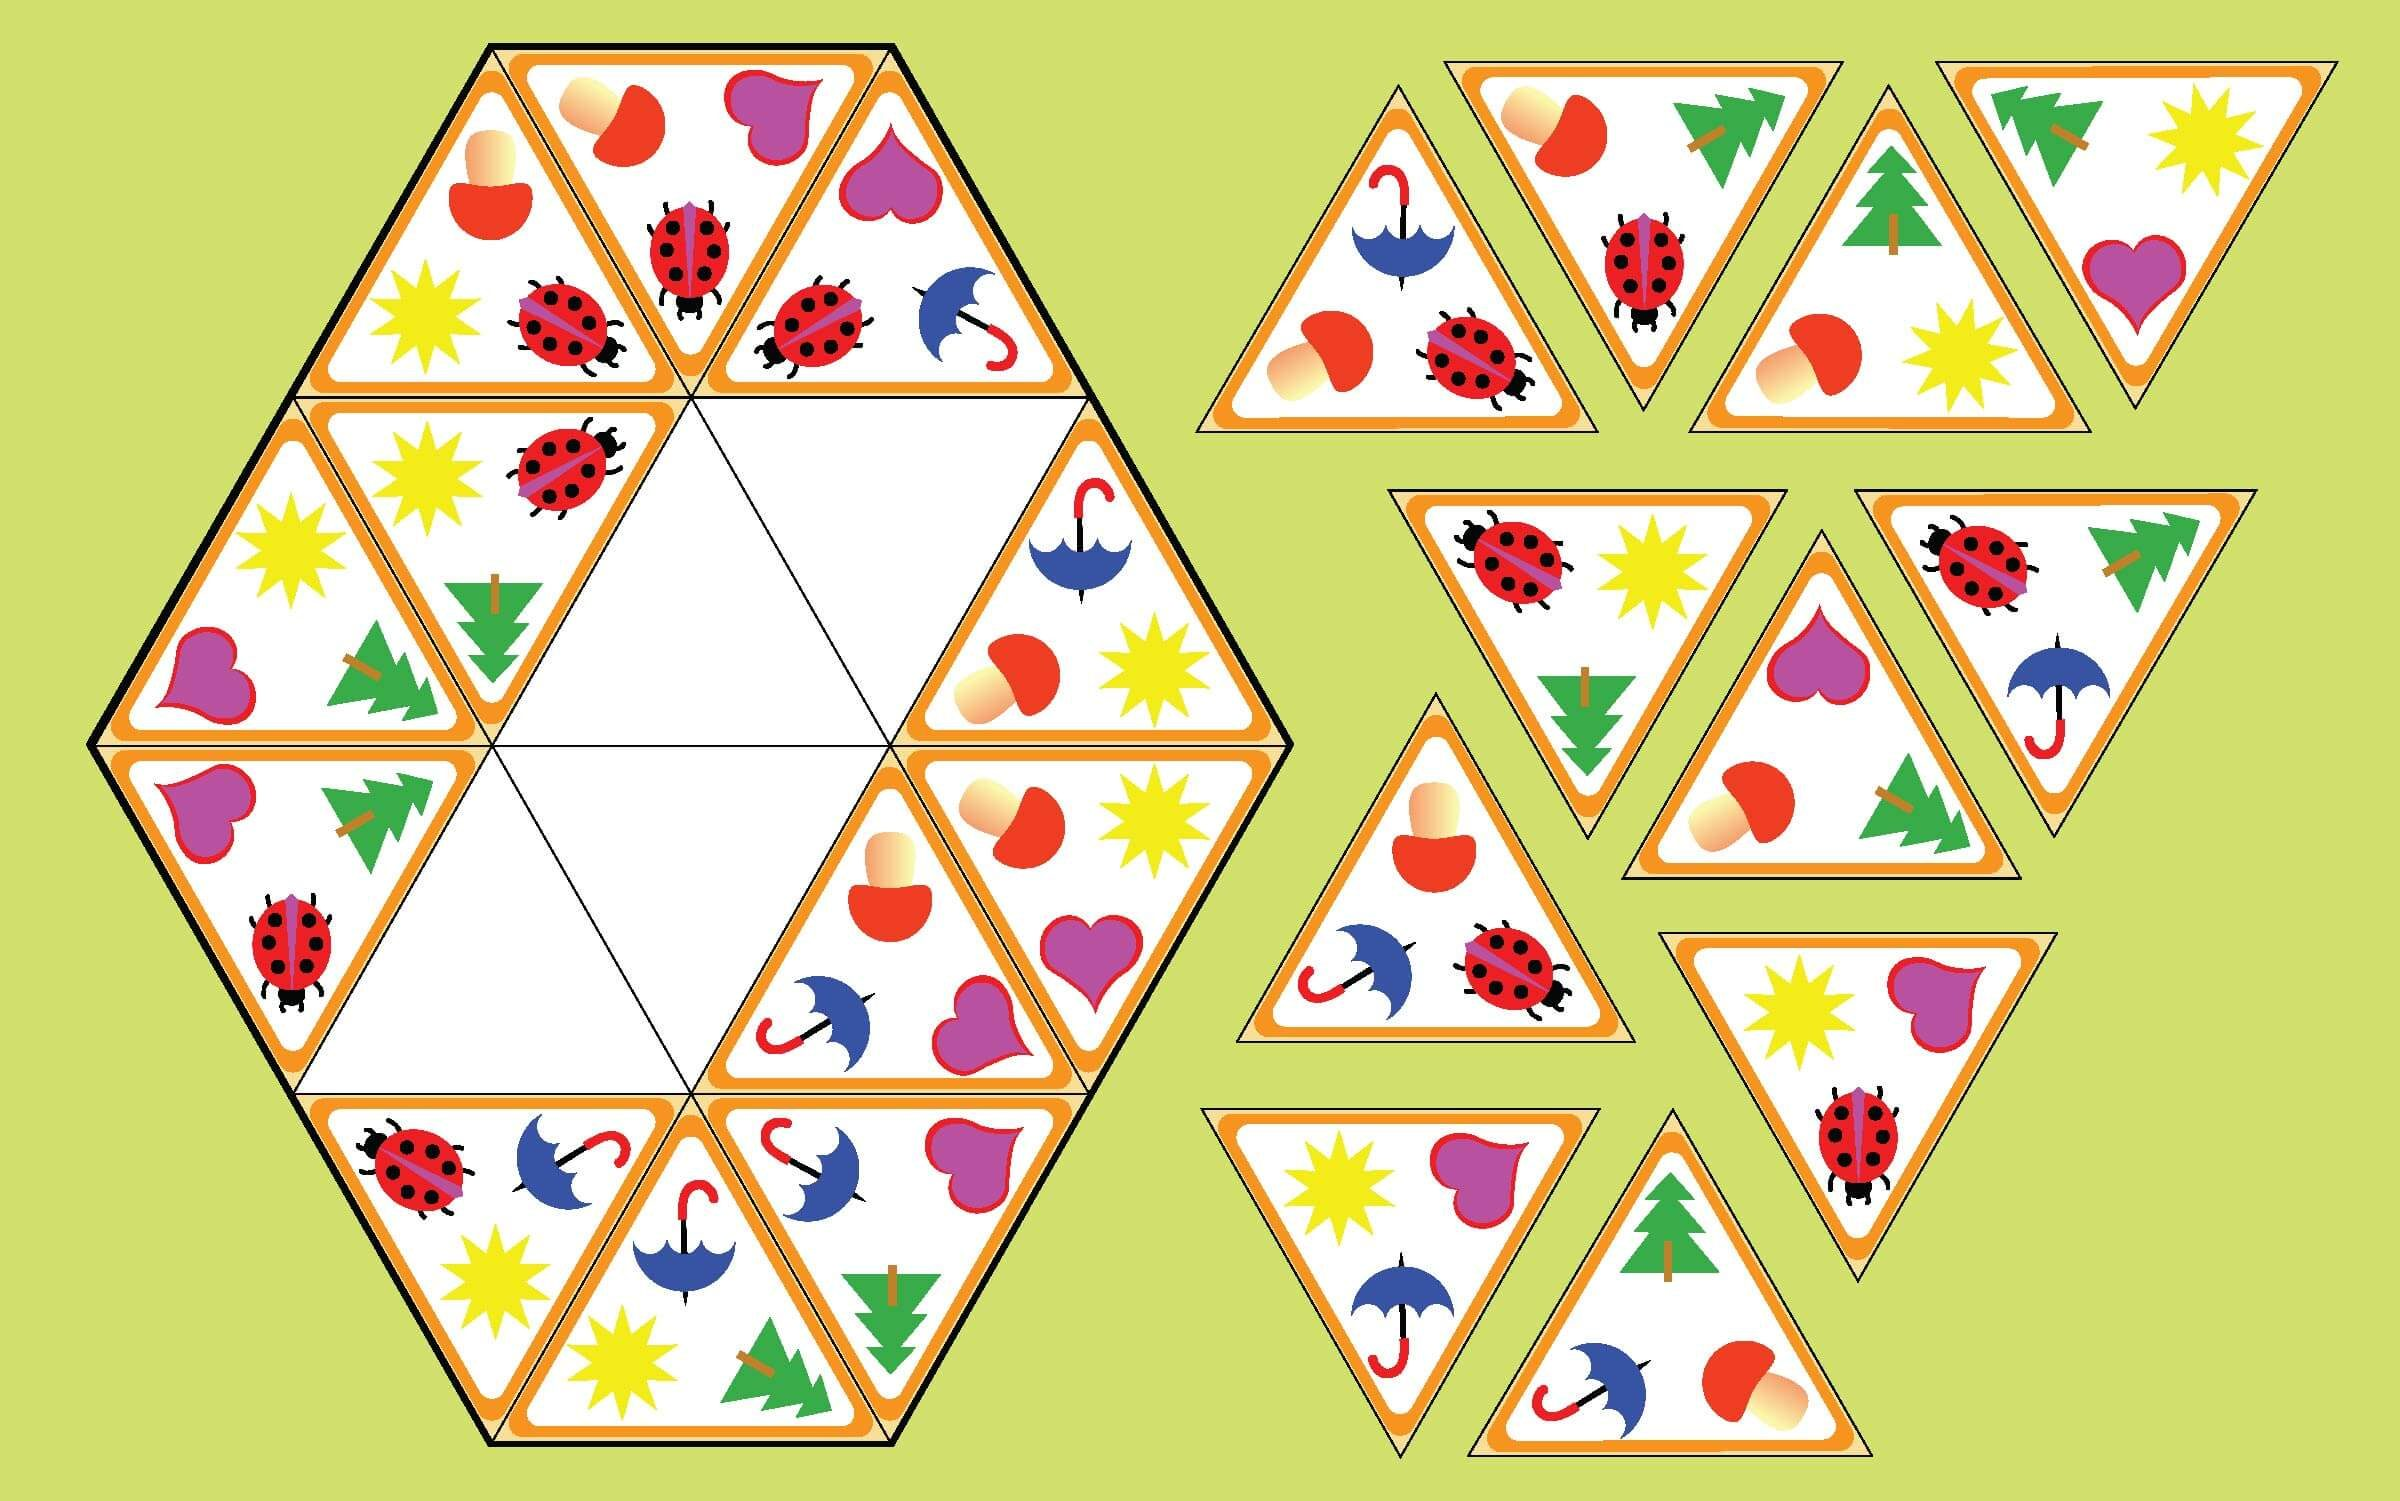 Can You Solve This Triangle Picture Logic Puzzle? | Reader's Digest